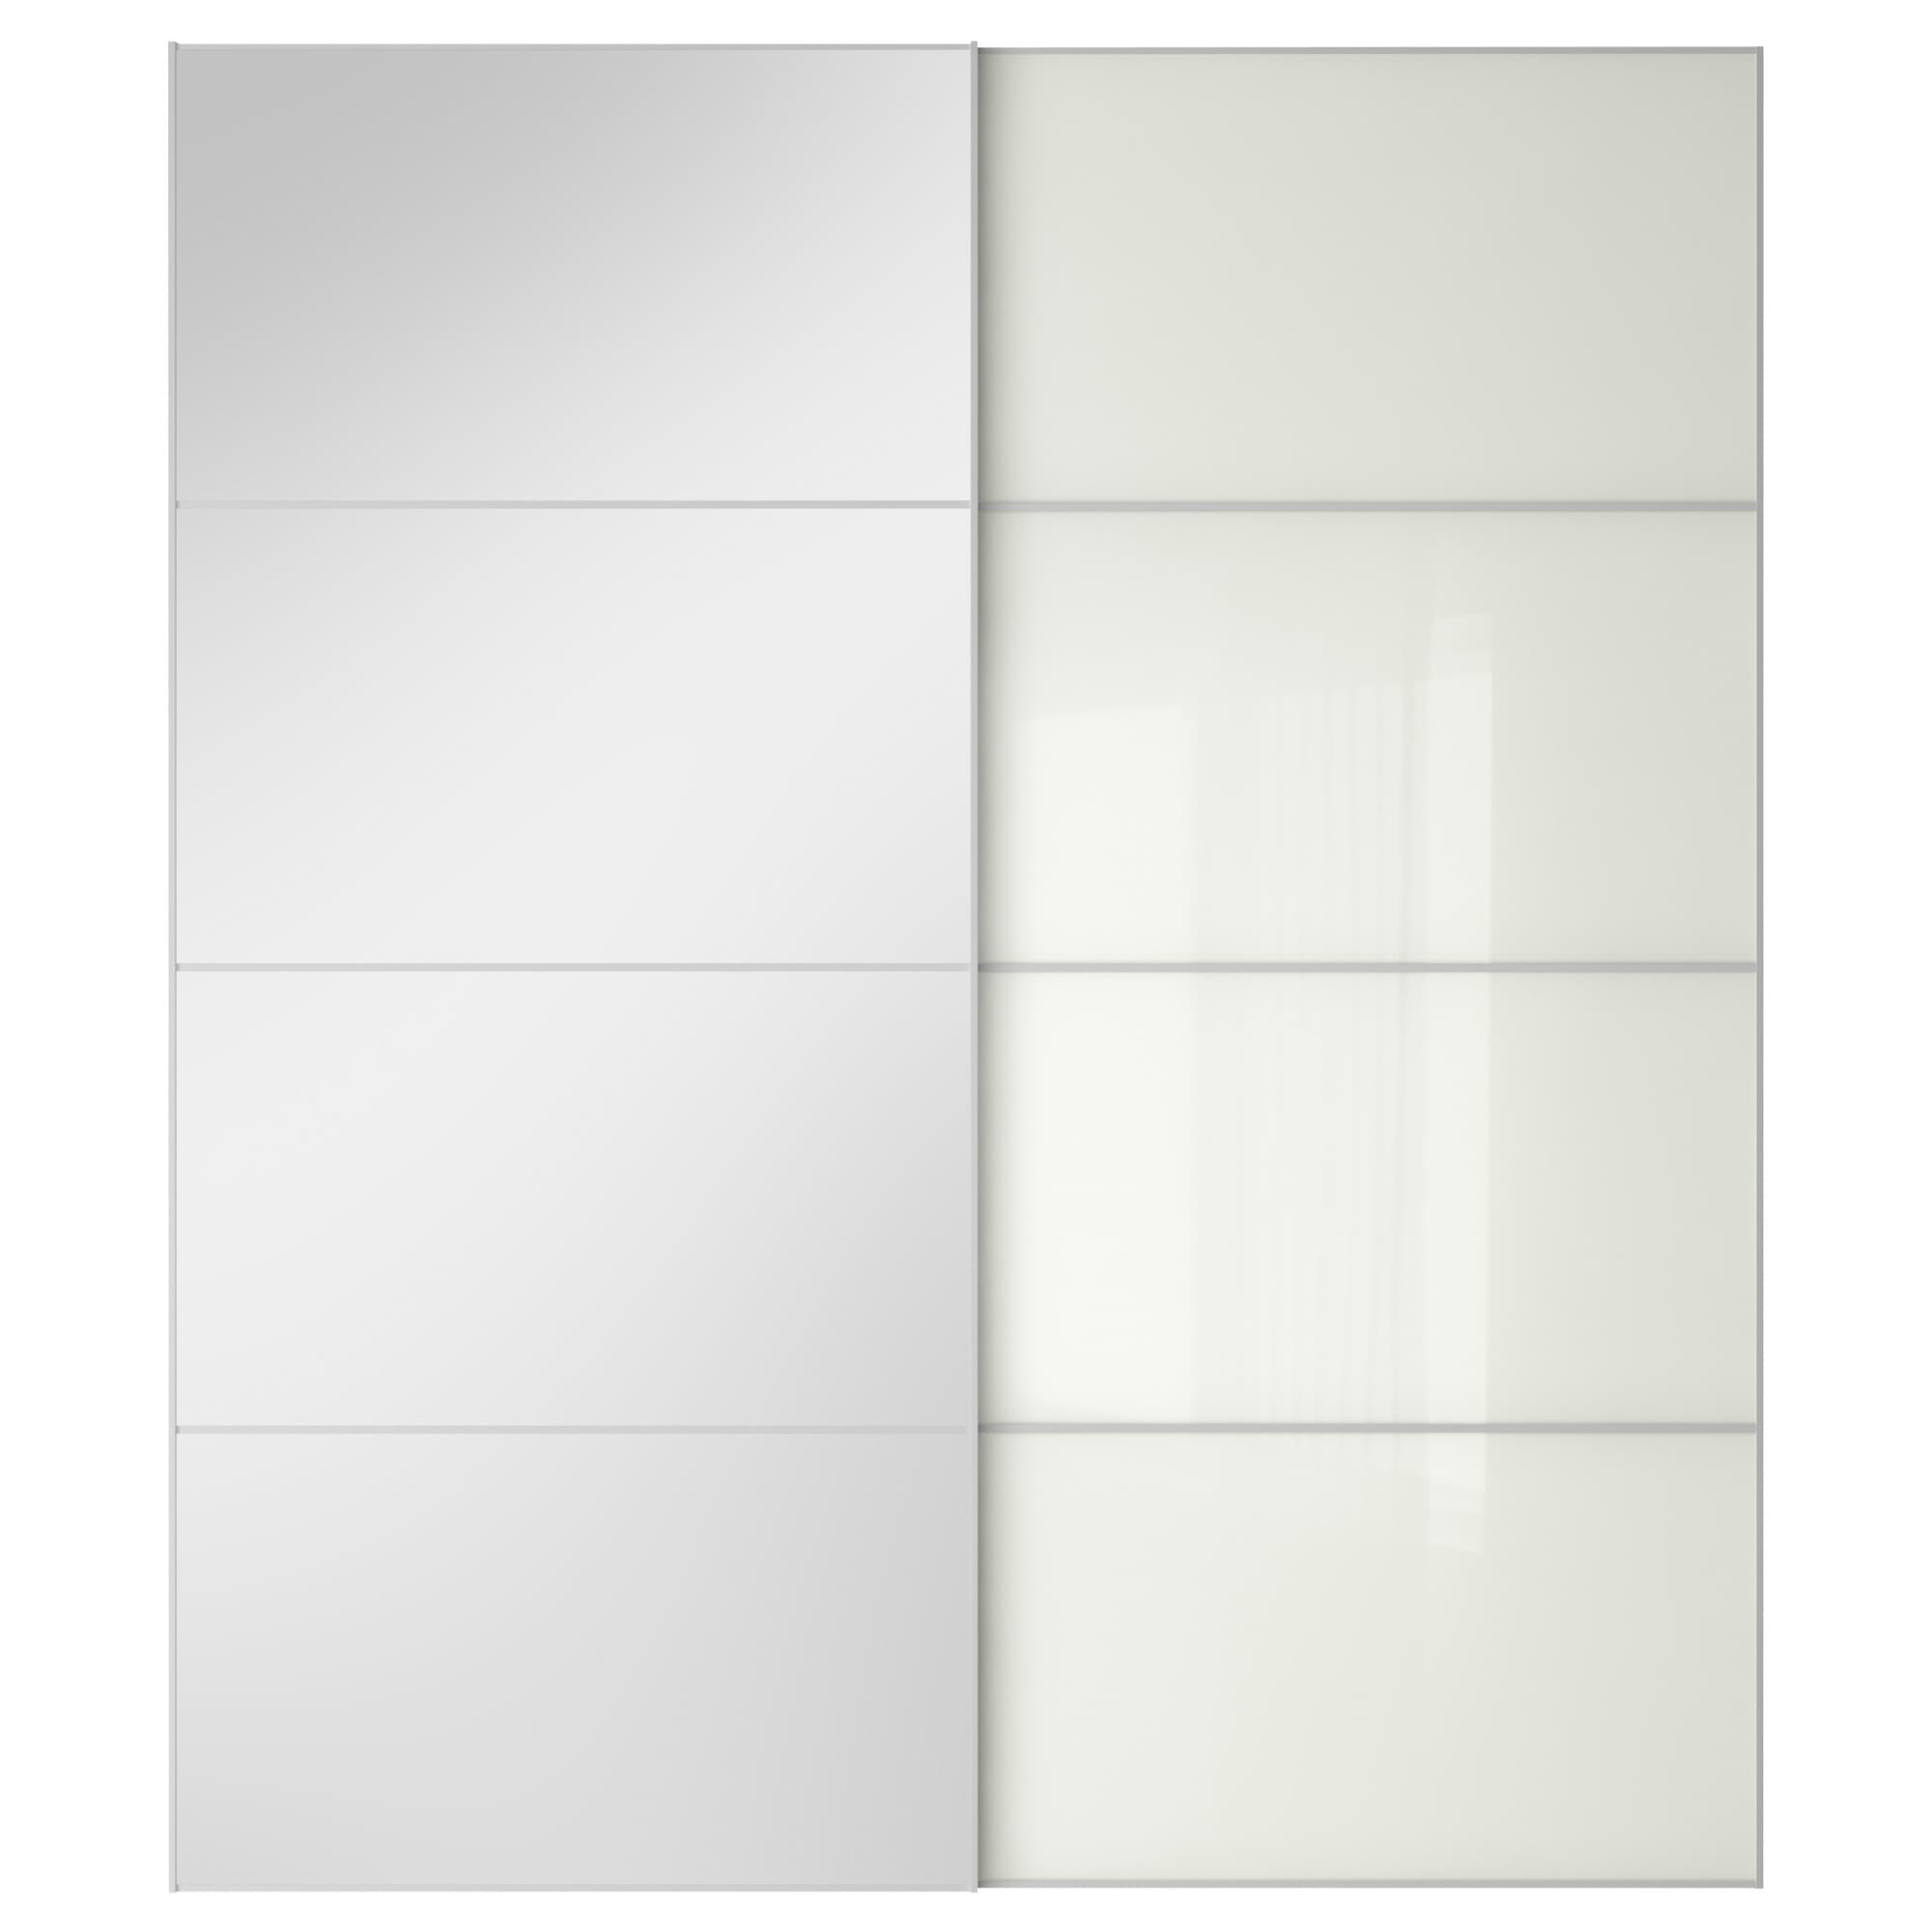 AULI / FÄRVIK pair of sliding doors mirror glass white glass Width 78  sc 1 st  Ikea & Sliding Closet Doors - PAX system - IKEA pezcame.com